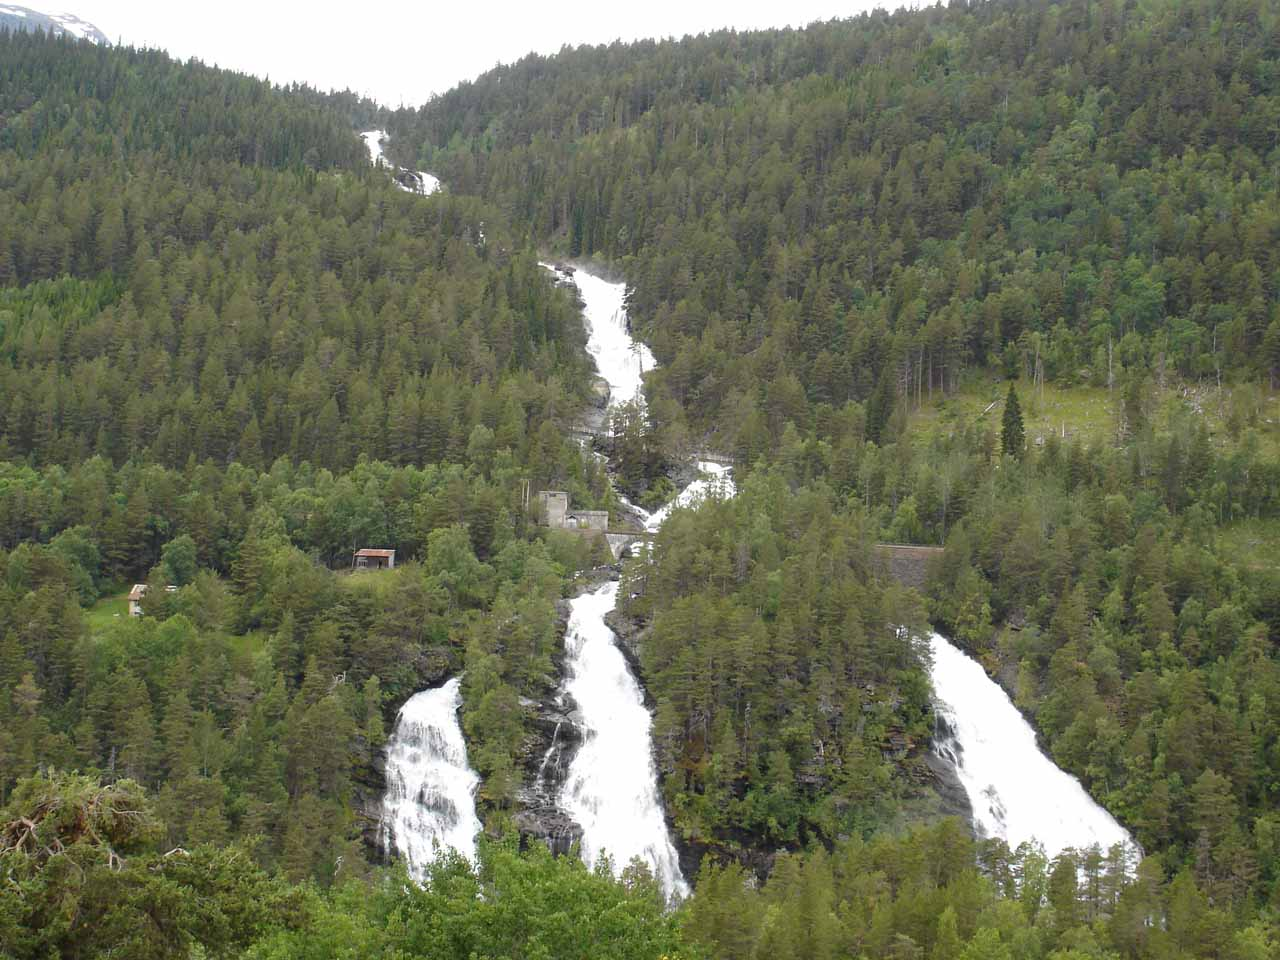 Final look at Vermafossen before we left